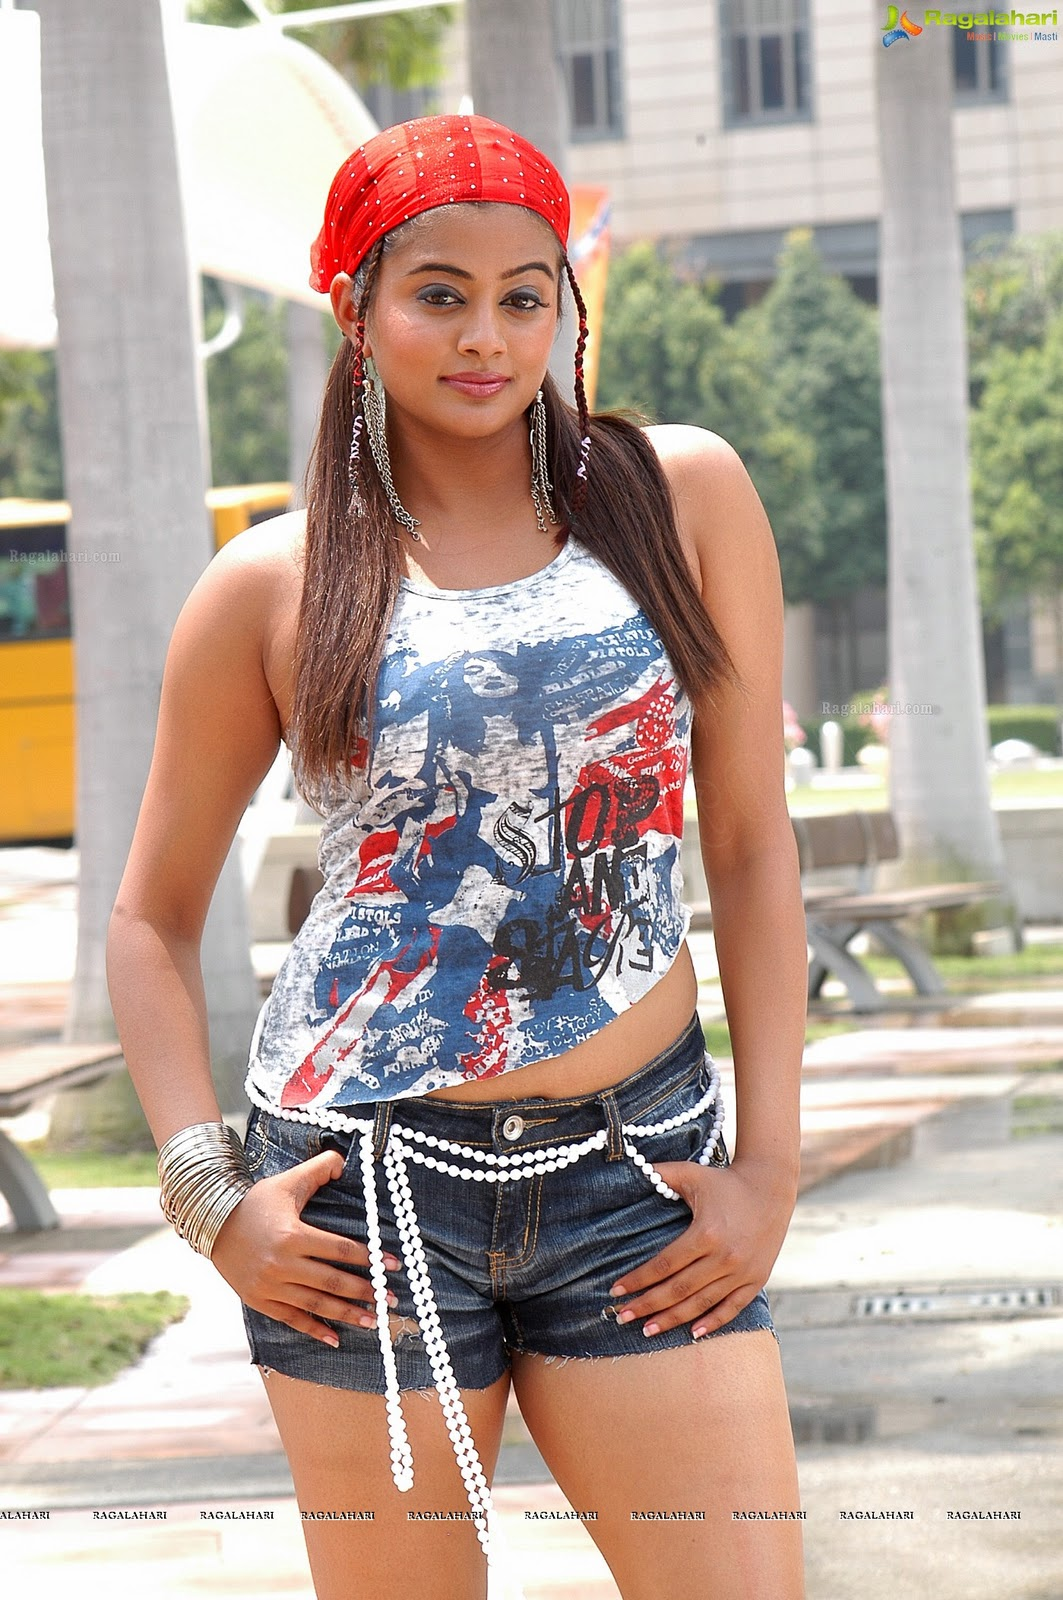 hot body shapes of priyamani in skirt